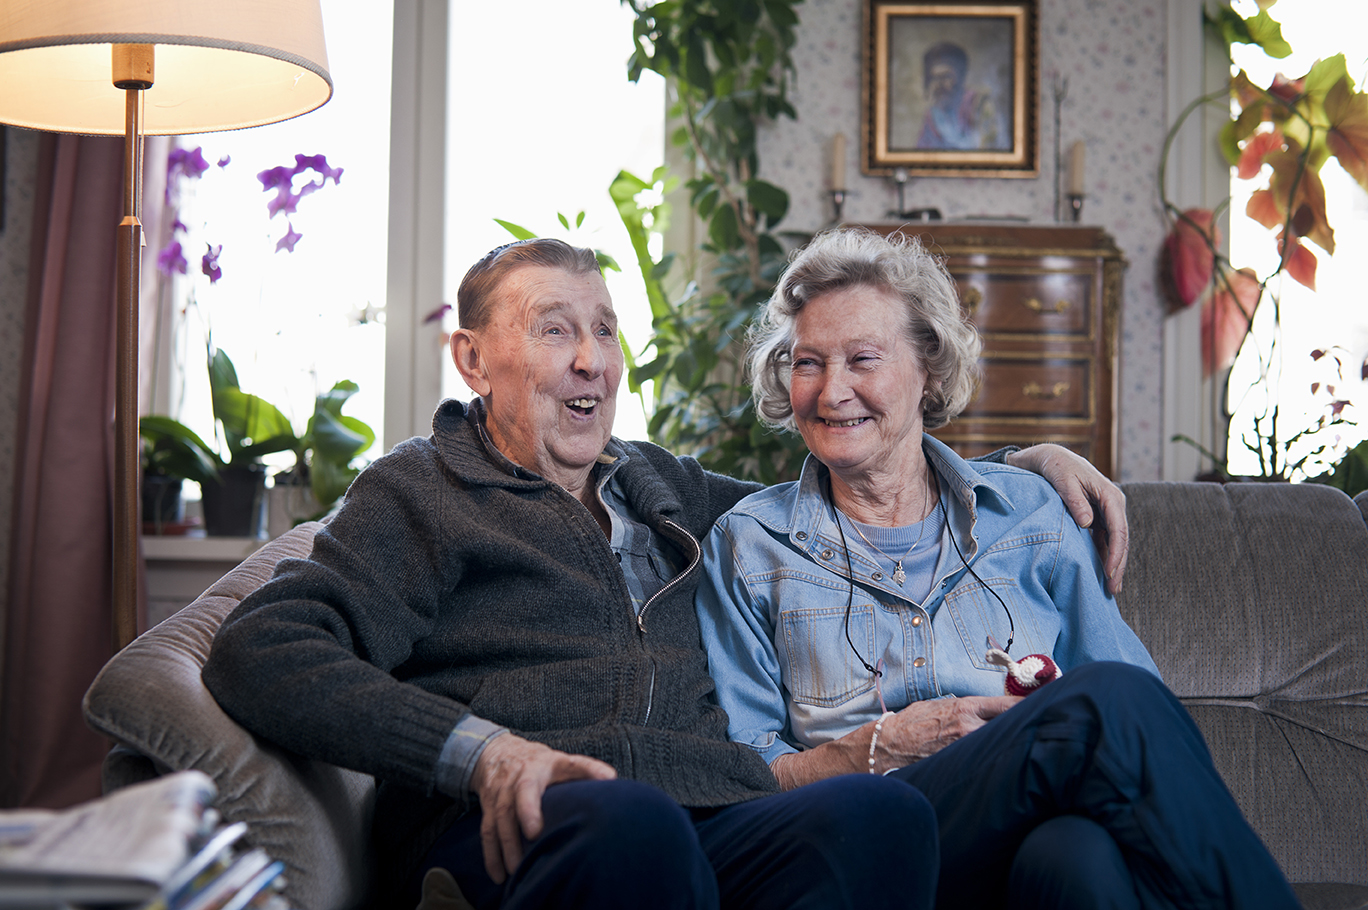 Older couple sitting together on sofa